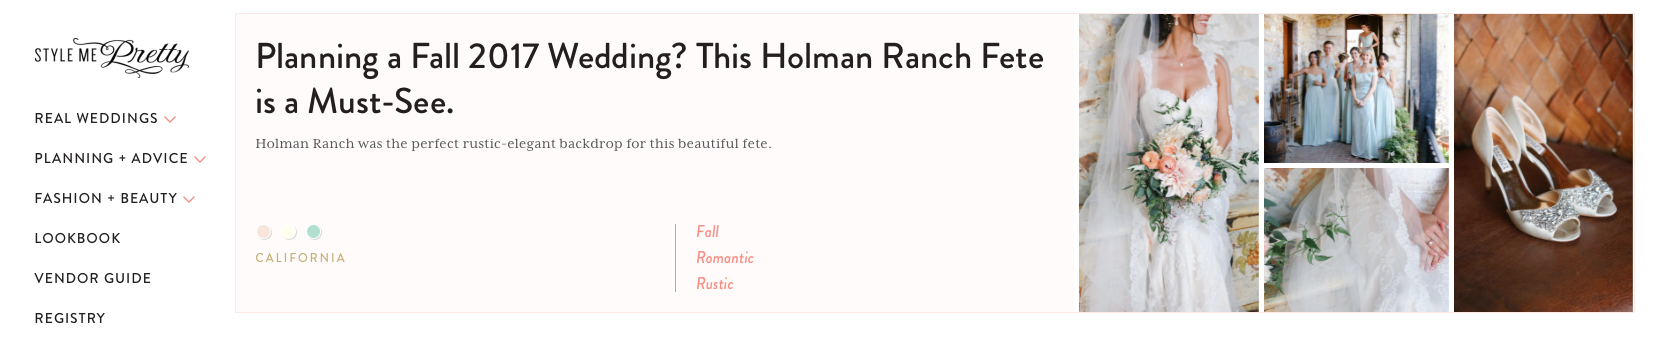 Holman Wedding Feature on Style Me Pretty Blog